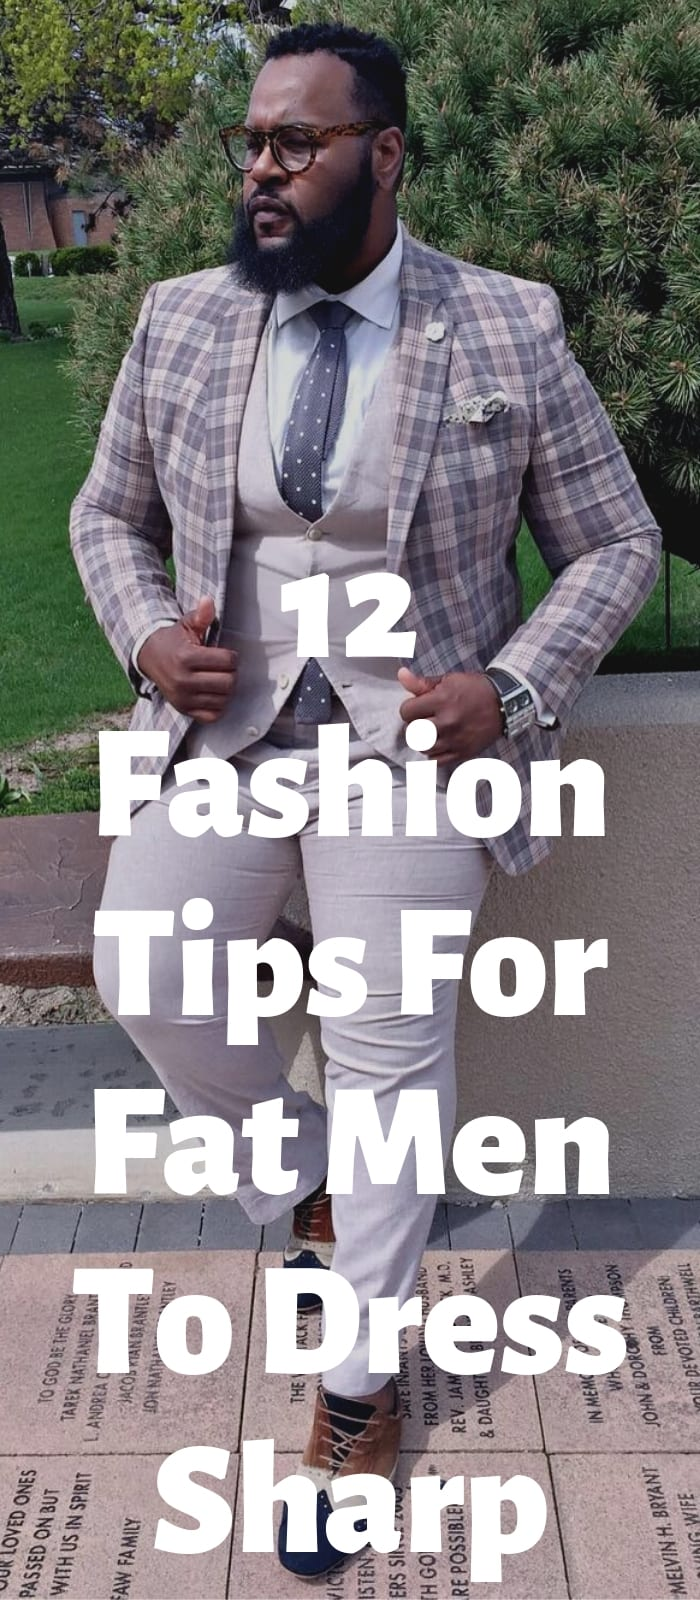 12 Fashion Tips For Fat Men To Dress Sharp!